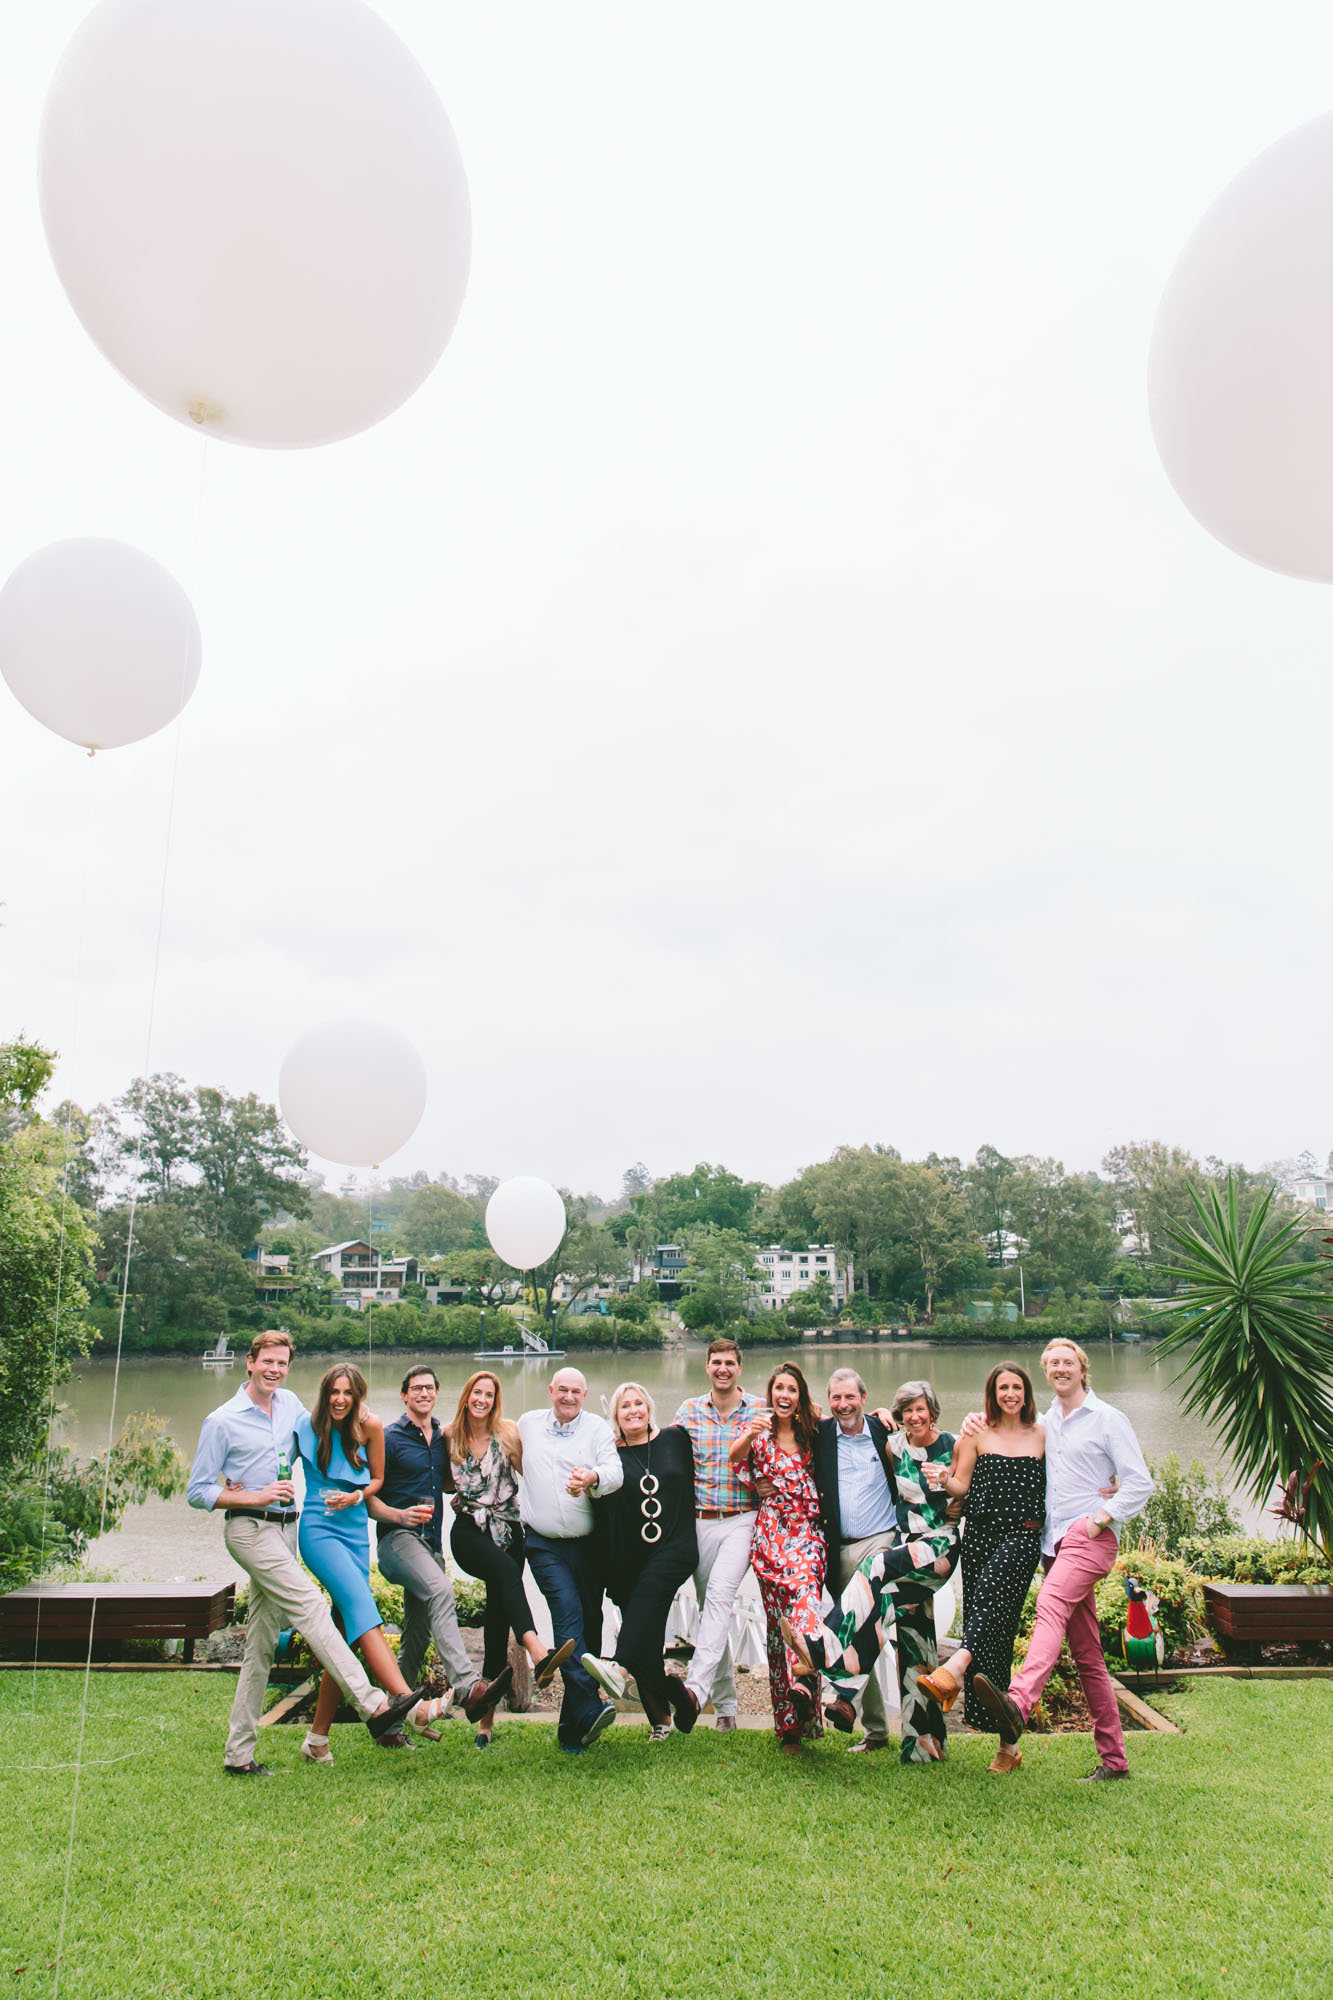 Emily_AL_EngagementParty_Photography_Chelmer_AnnaOsetroff-Highlights-Web-21